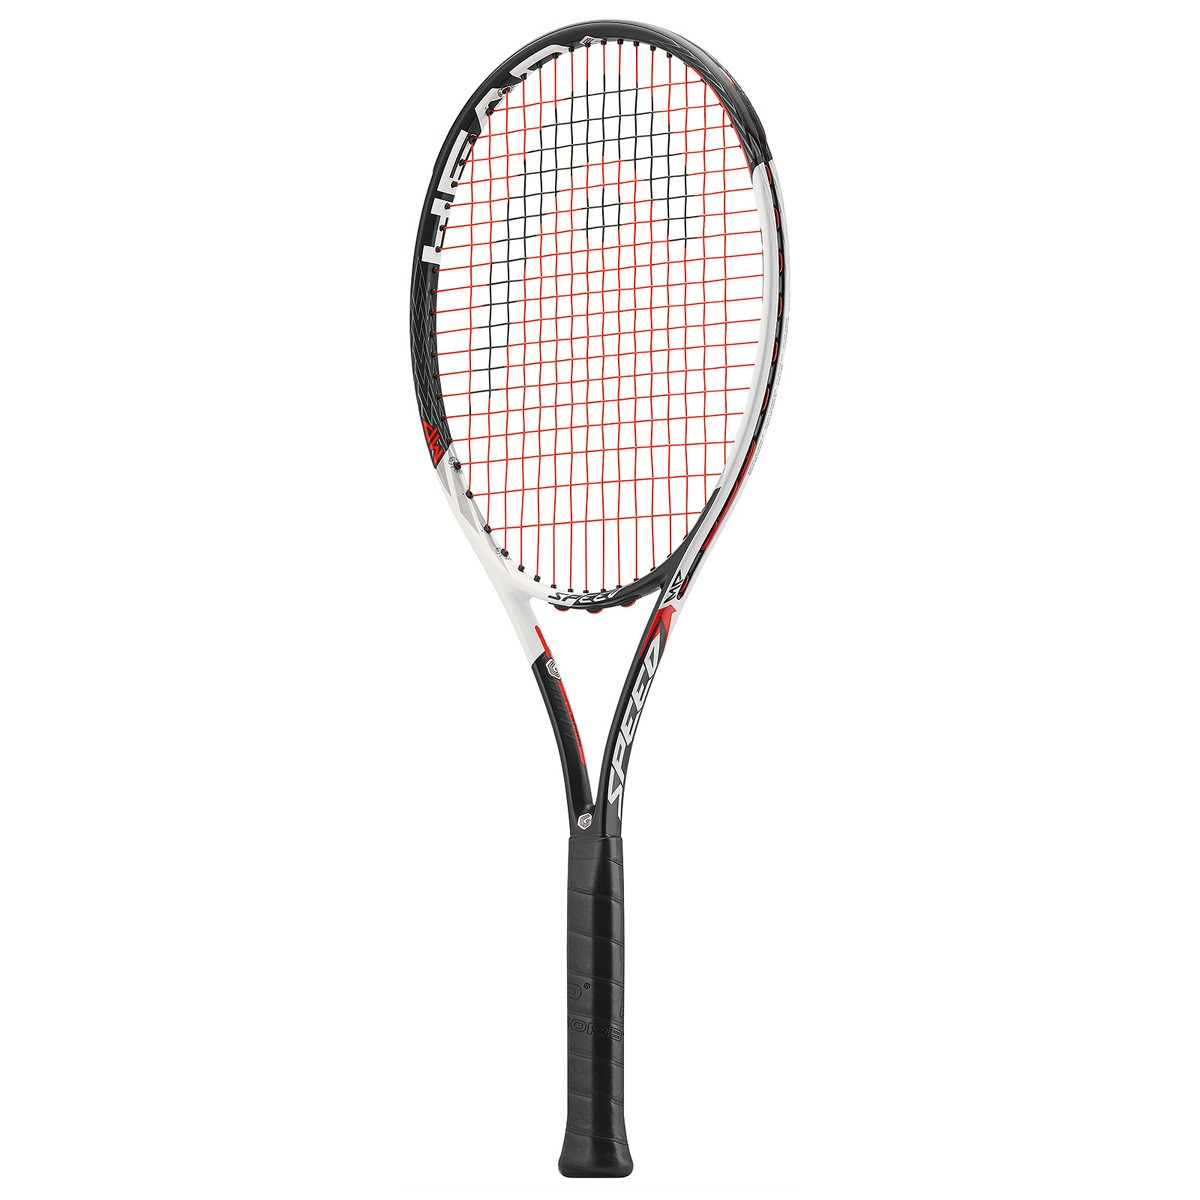 Rakieta tenisowa Head Graphene Touch Speed MP + Lynx